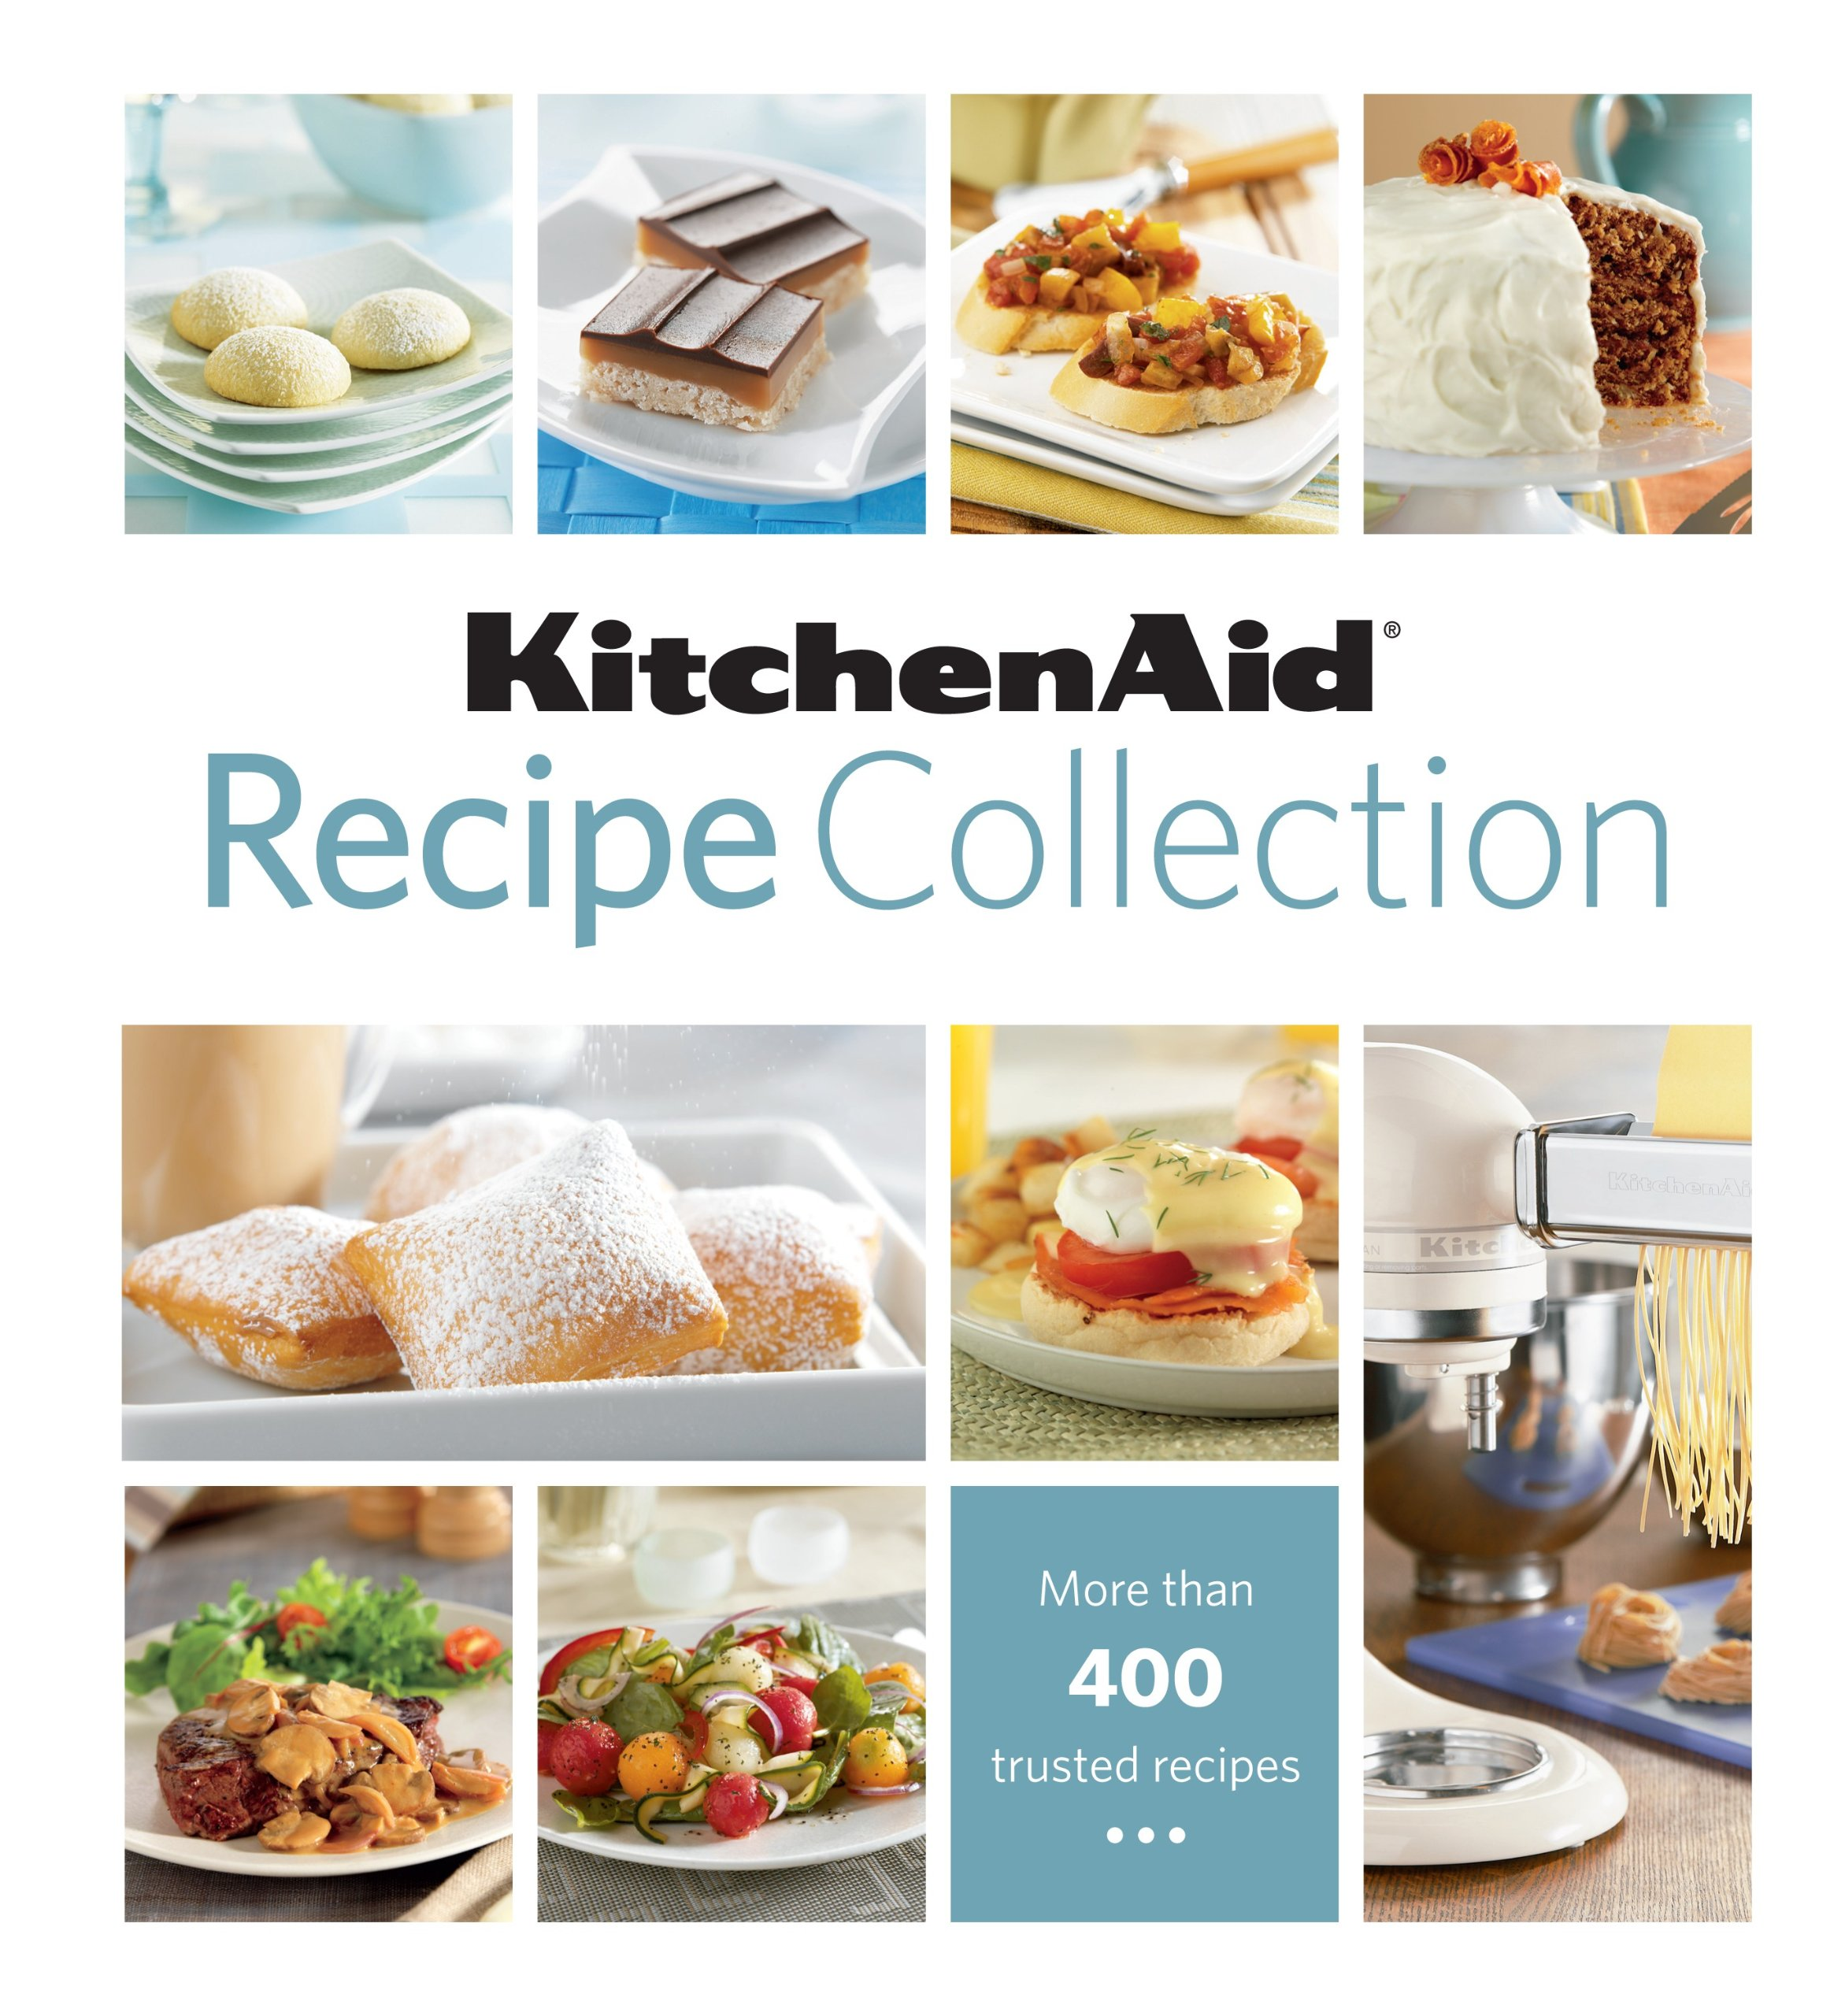 Kitchenaid recipe collection amazon publications kitchenaid recipe collection amazon publications international 9781605532486 books forumfinder Choice Image